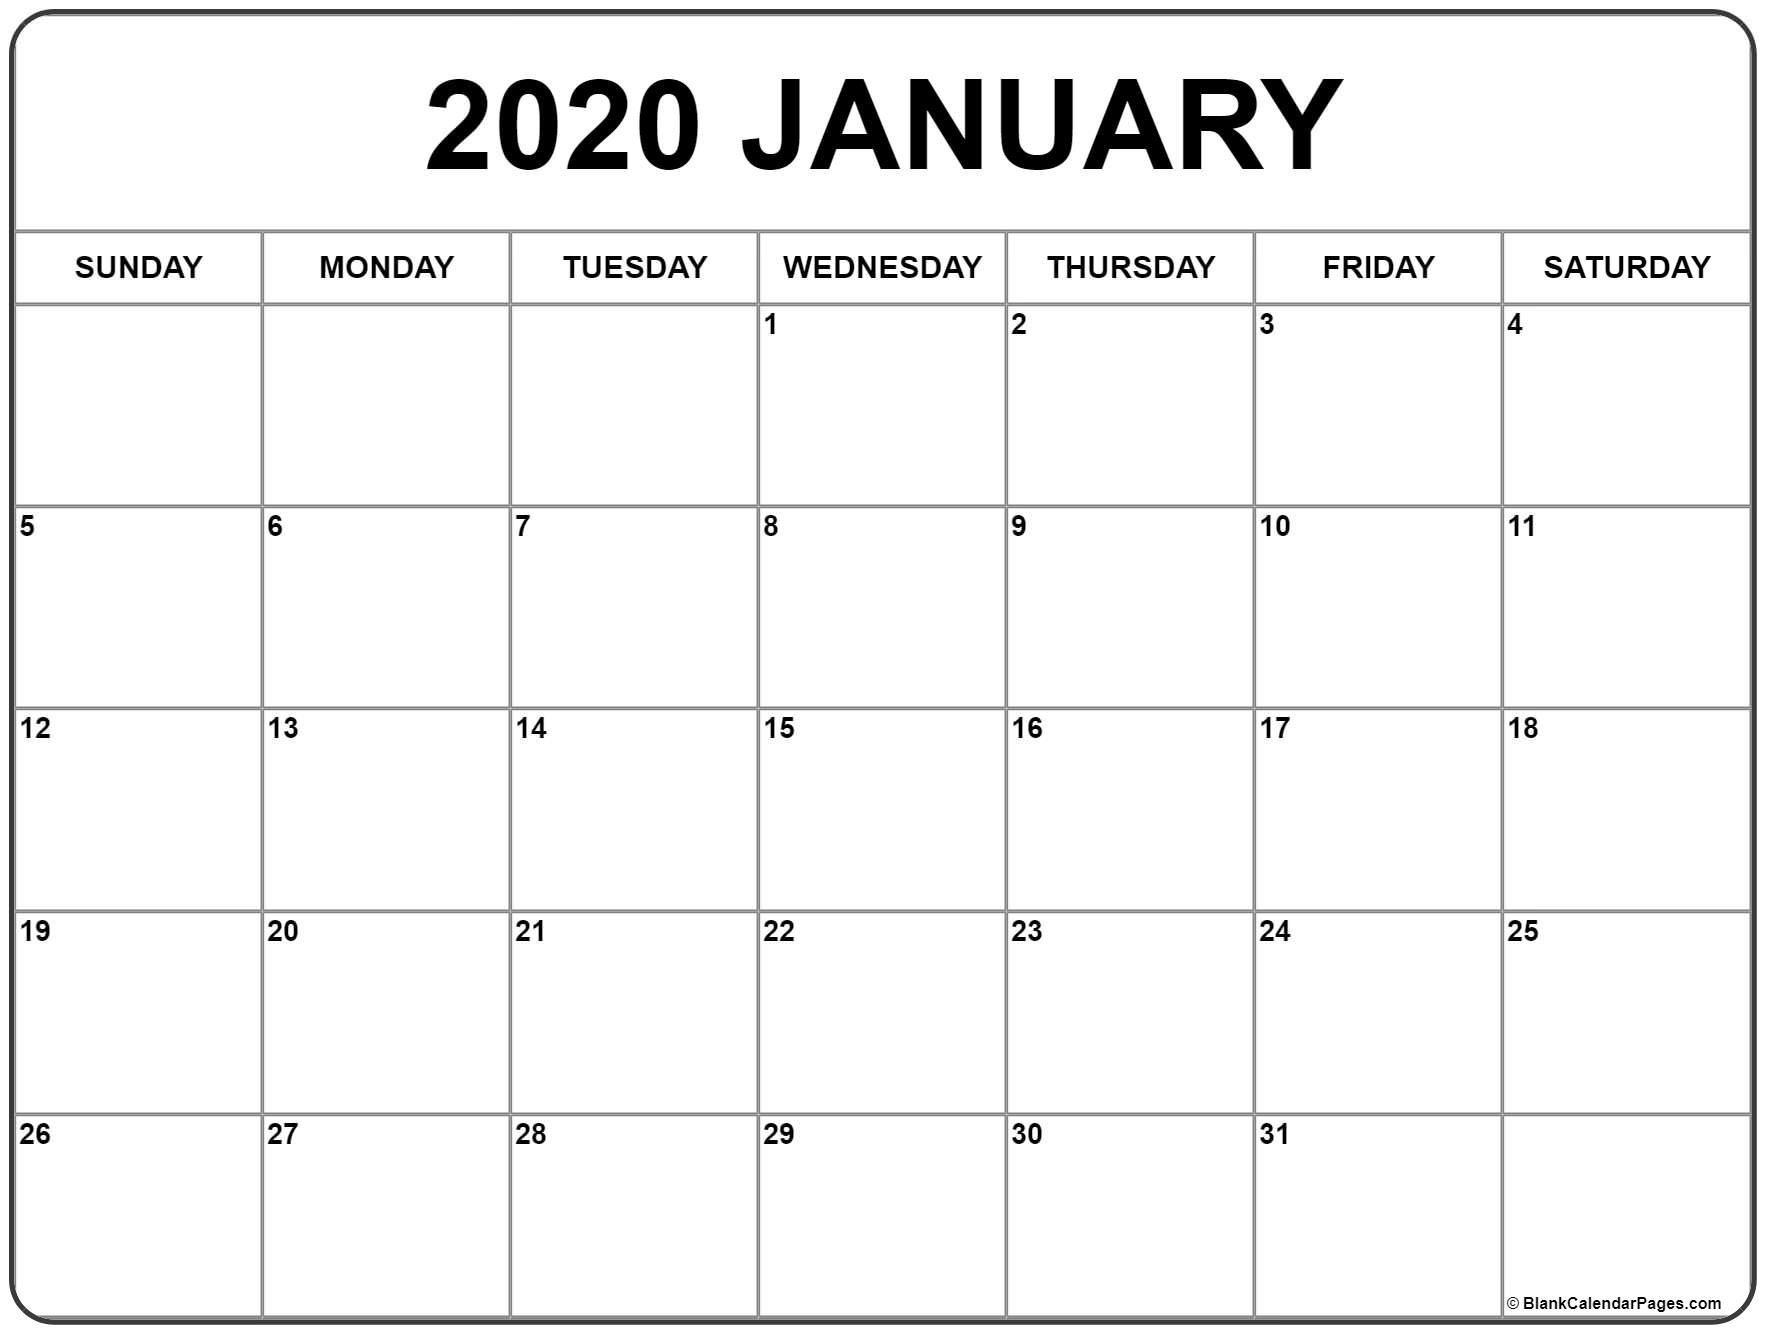 January 2020 Calendar | Free Printable Monthly Calendars pertaining to Printable Fill In 2020 Calendar Large Print